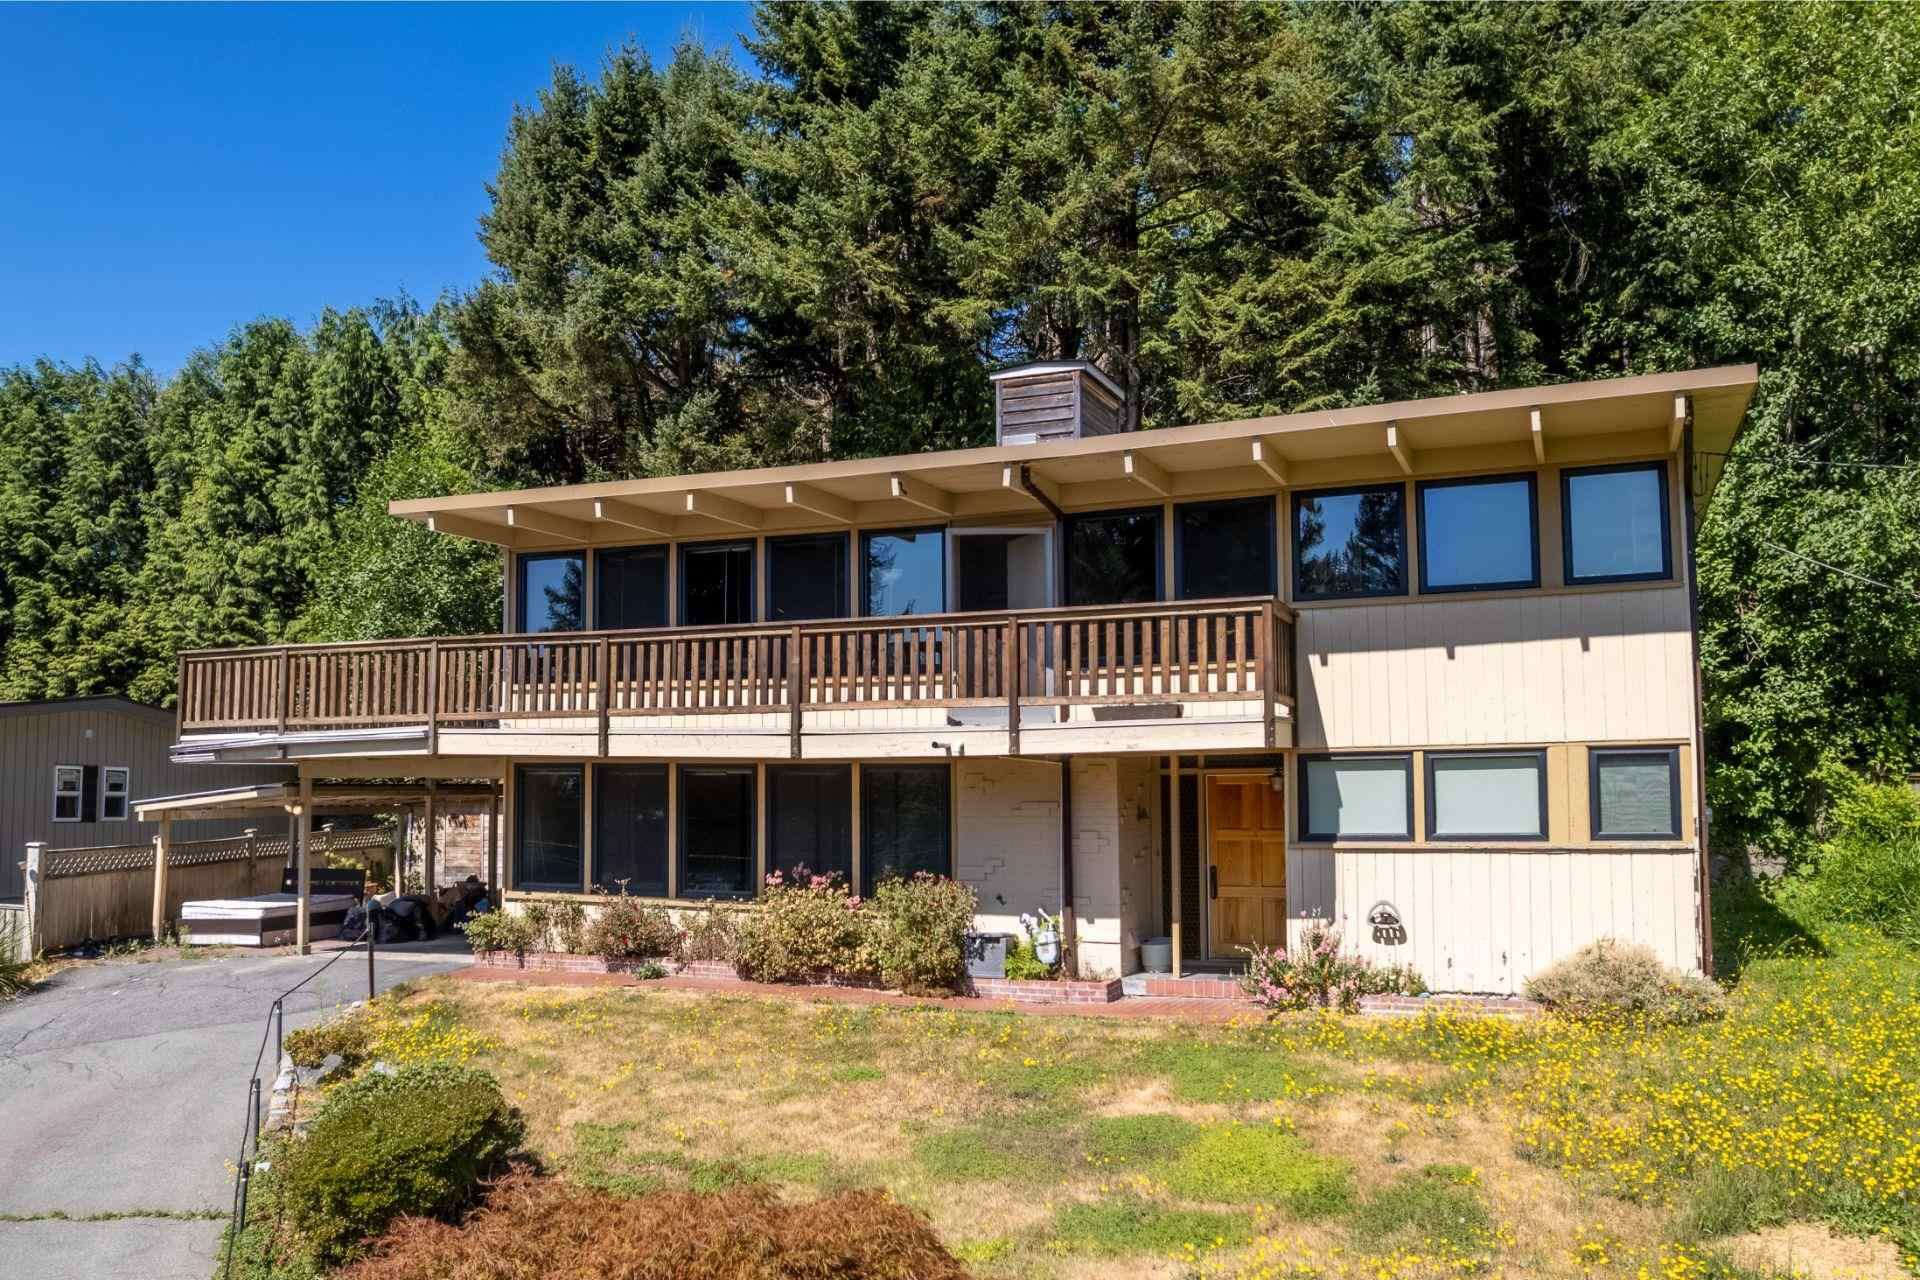 Photo of 87 GLENMORE DRIVE, West Vancouver, BC V7S 1A9 (MLS # R2604393)